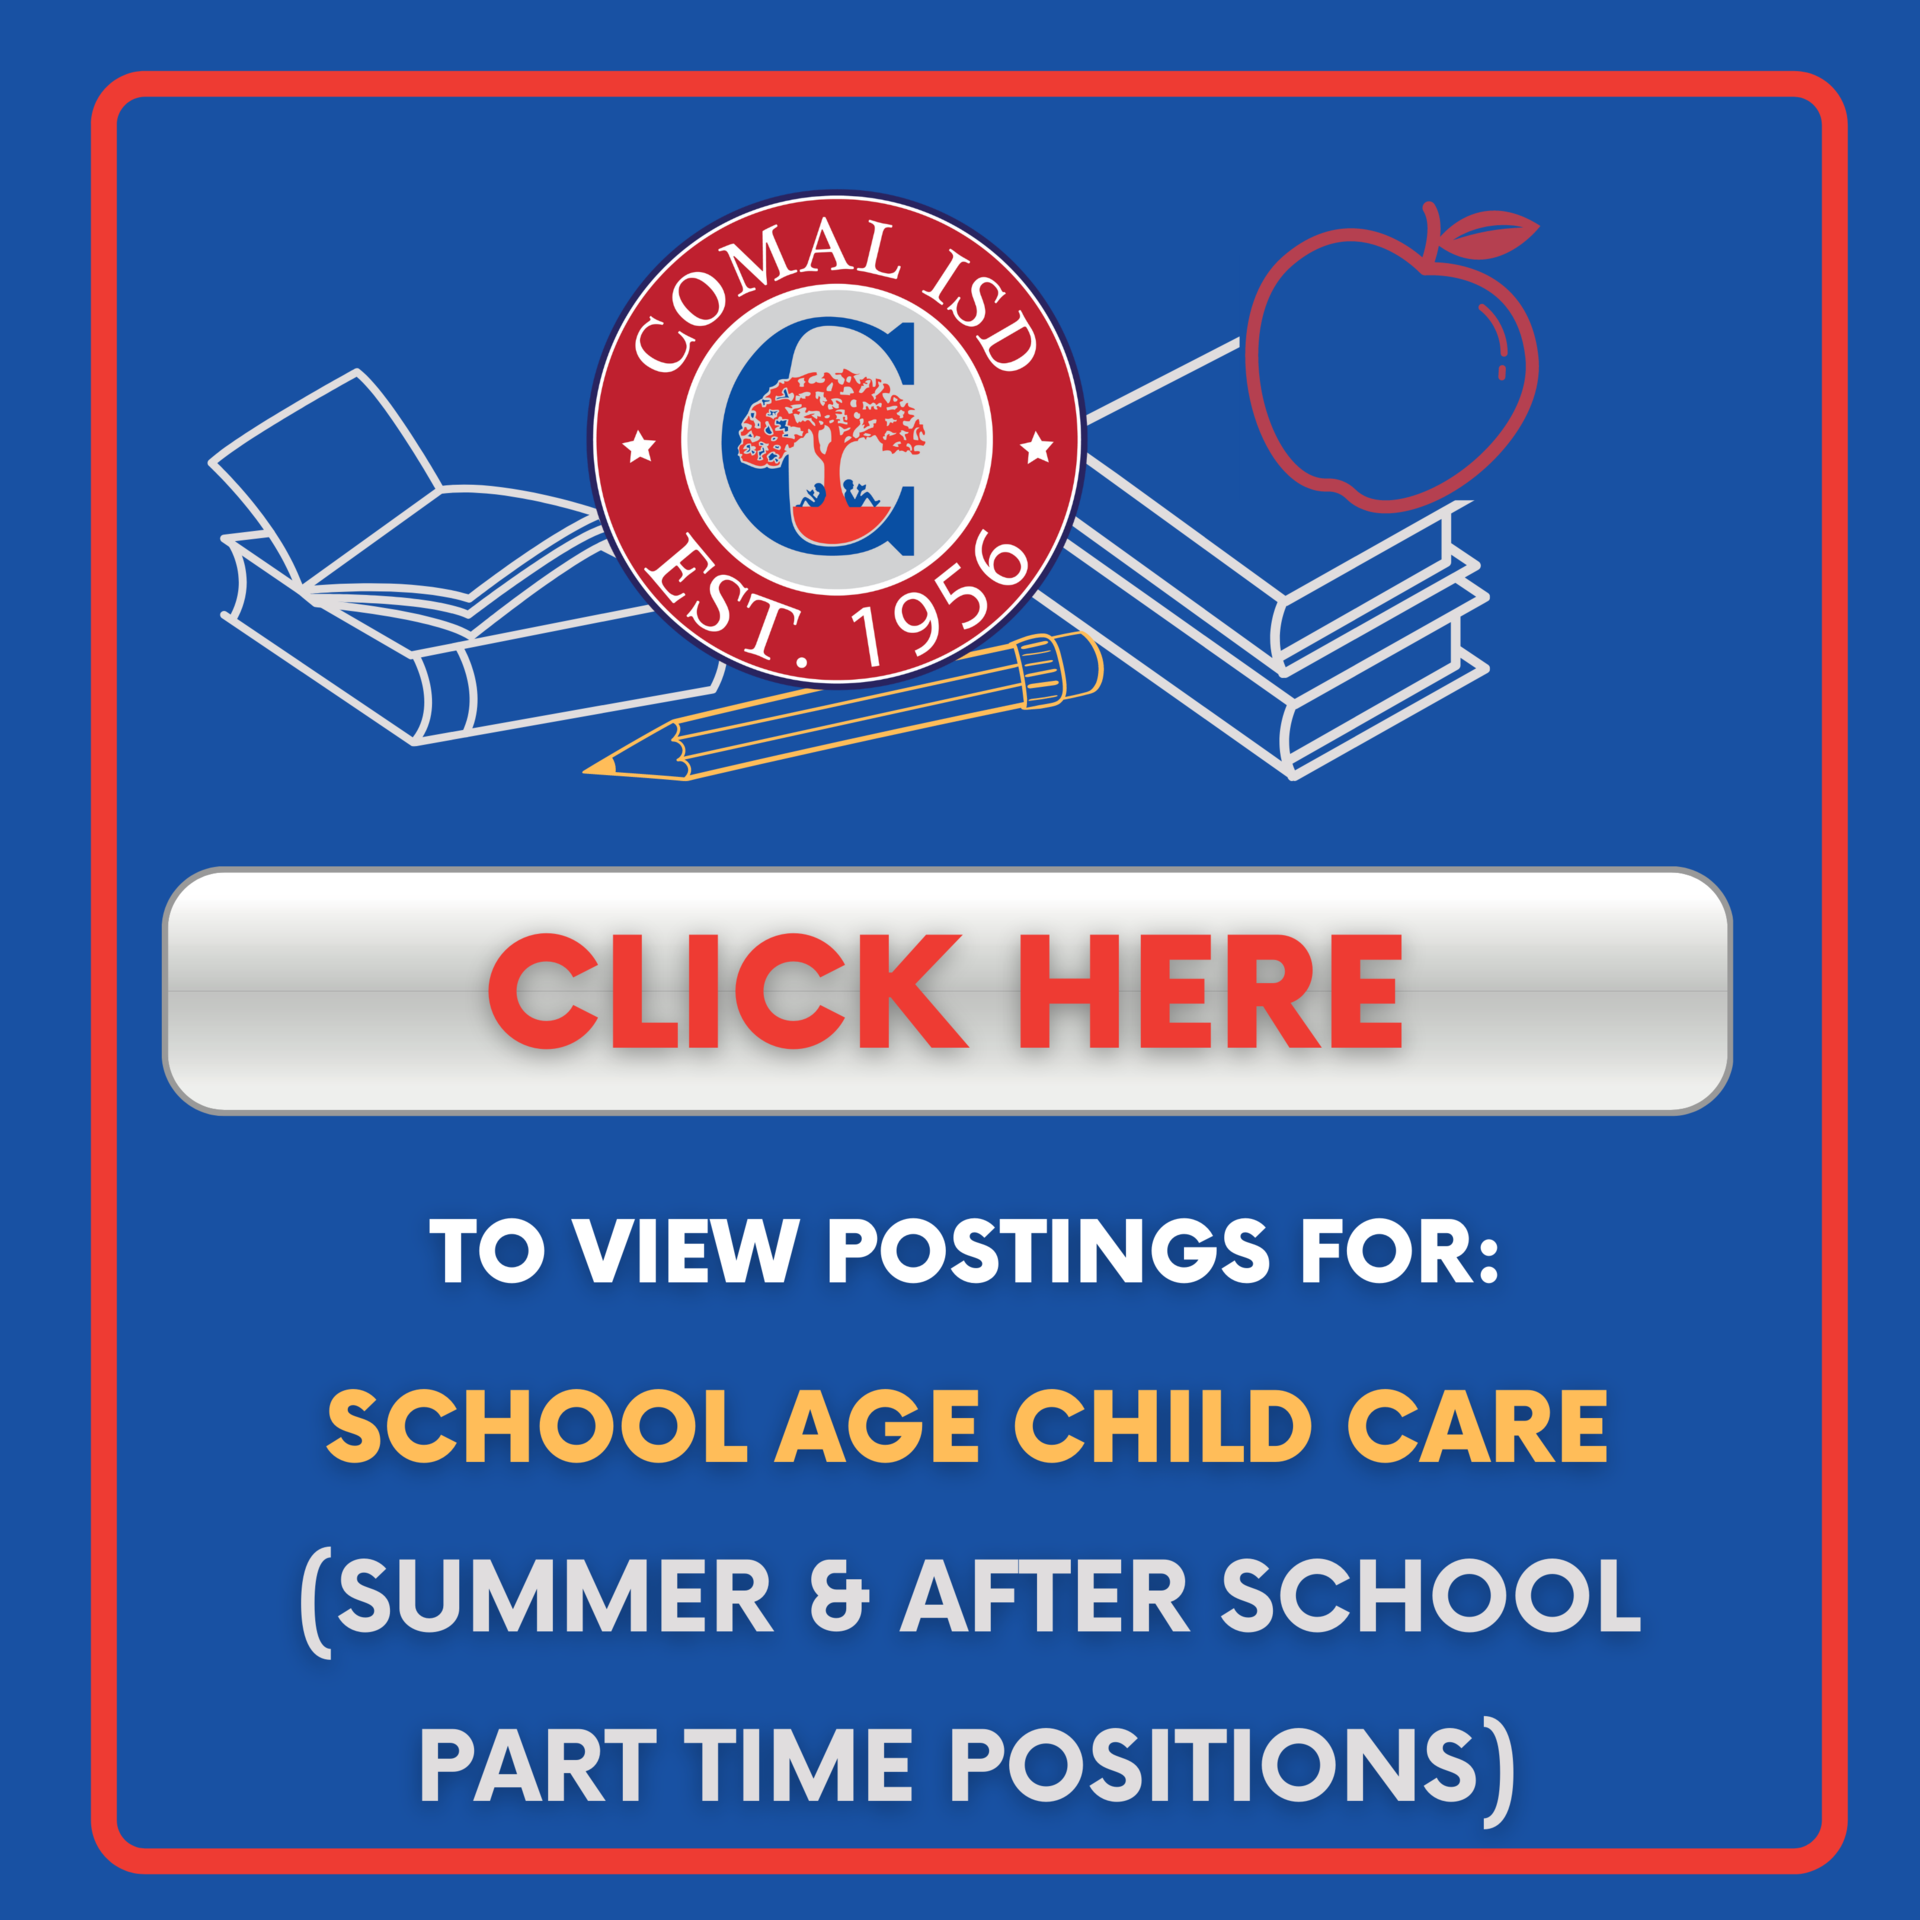 After School Care Positions